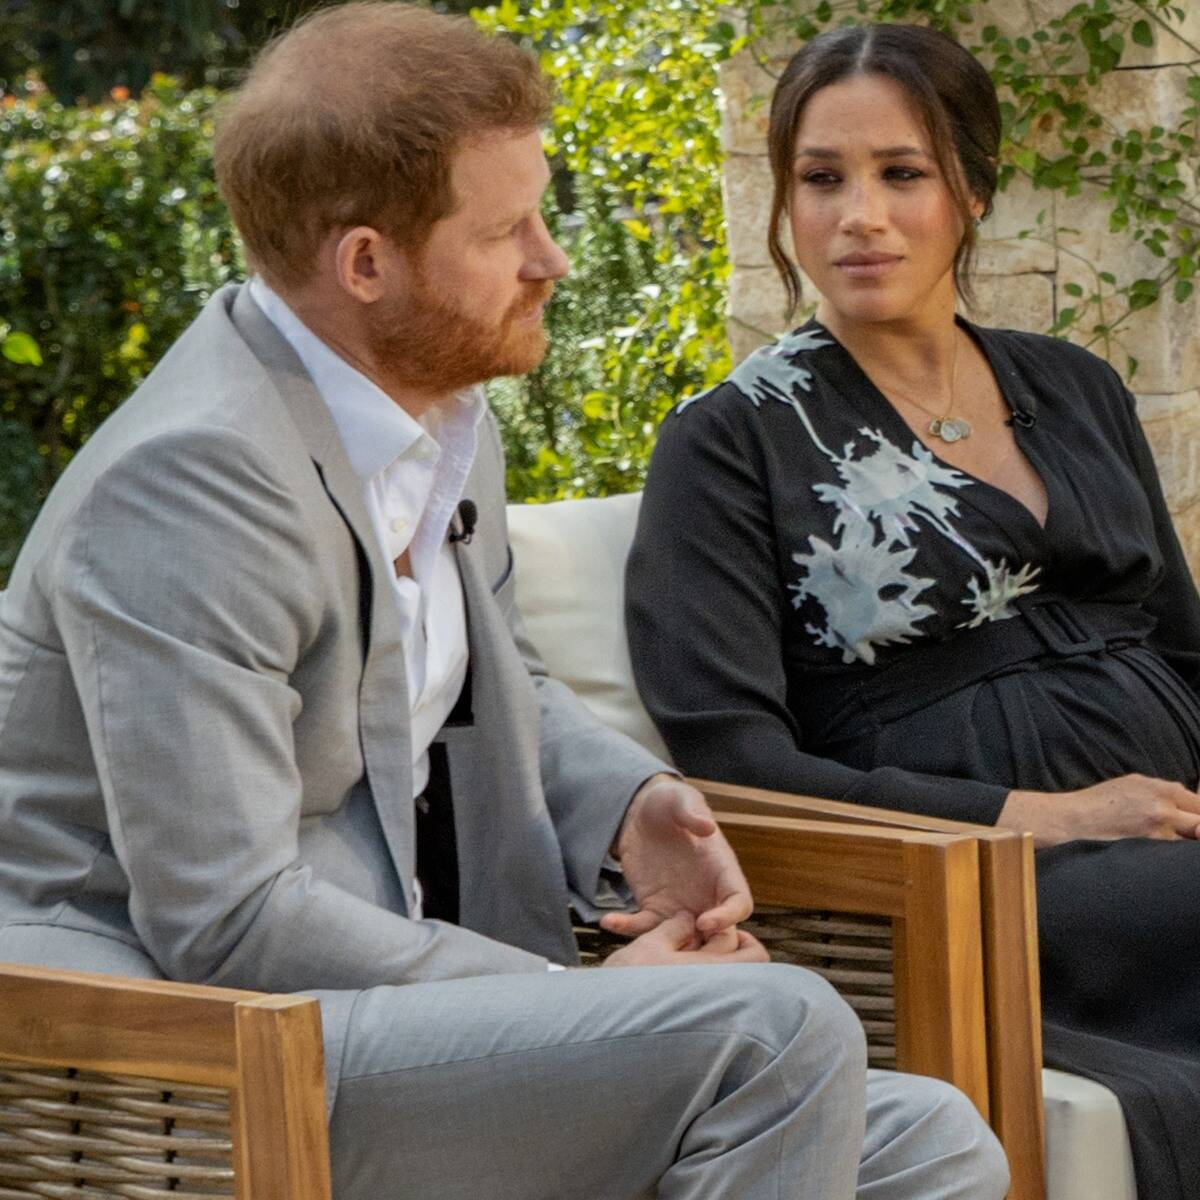 Prince Harry and Oprah Winfrey Interview Piers Morgan Feud Defeats Meghan Markle for TV Show Comments!